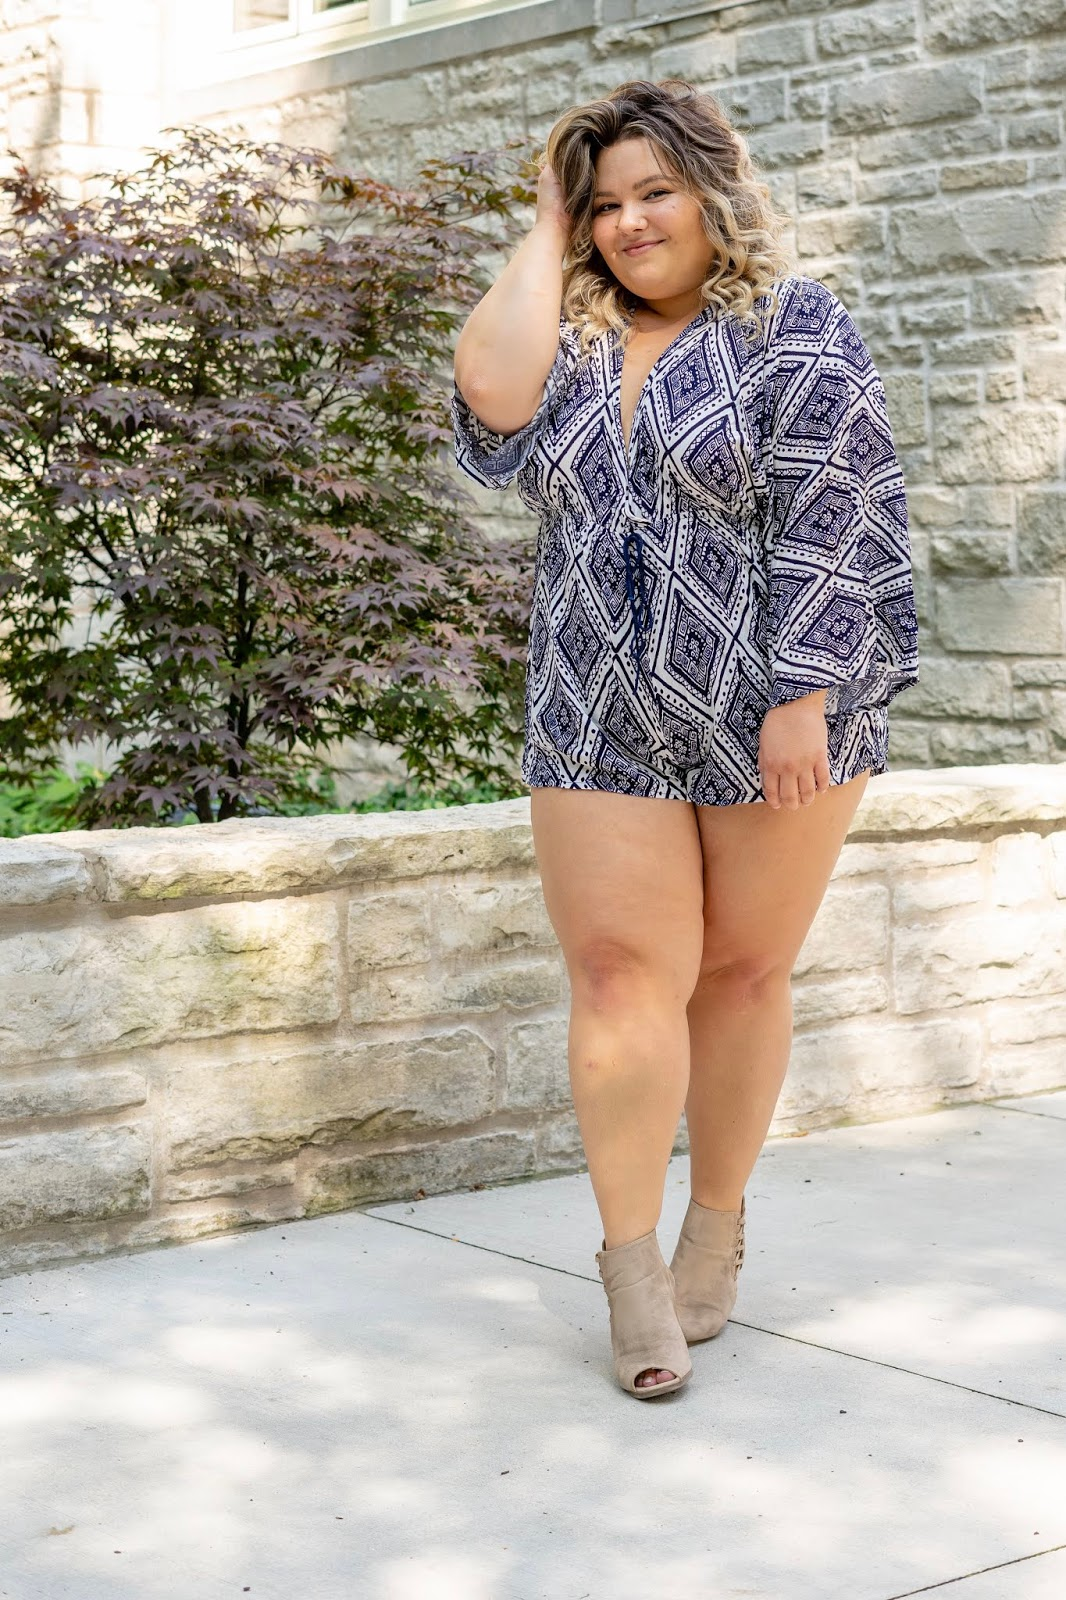 Chicago fashion blogger, Chicago plus size fashion blogger, natalie Craig, natalie in the city, plus size fashion, Chicago fashion, plus size fashion blogger, eff your beauty standards, fatshion, skorch magazine, Chicago model, plus size model, plus size petite, affordable plus size clothing, embrace your curves, plus model magazine, petite plus size, plus size loft clothing, fashion nova, fashion nova curve, plus size rompers, flattering rompers, how to find the best romper, nova babe